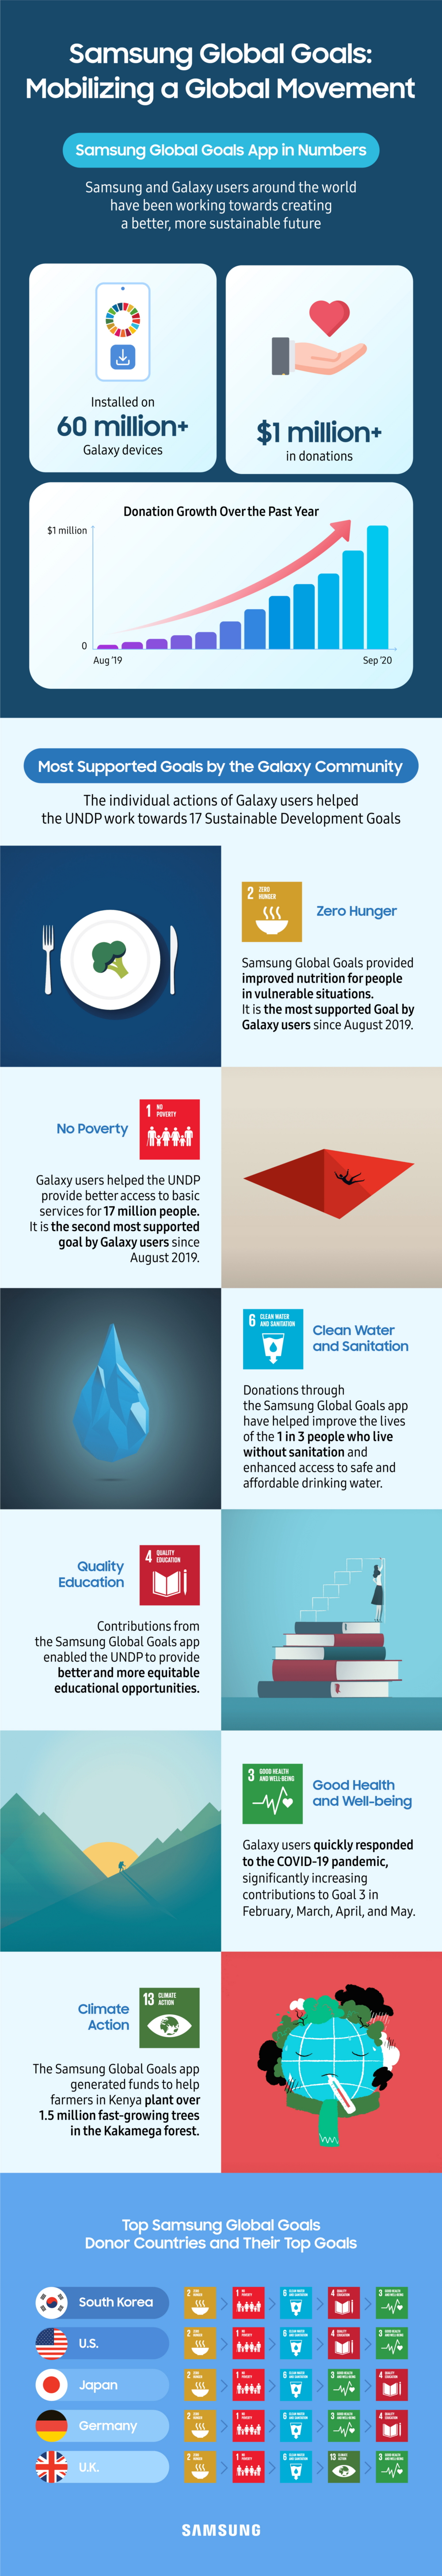 The Samsung Galaxy Community Raised $1M to Support the Global Goals - Image 2